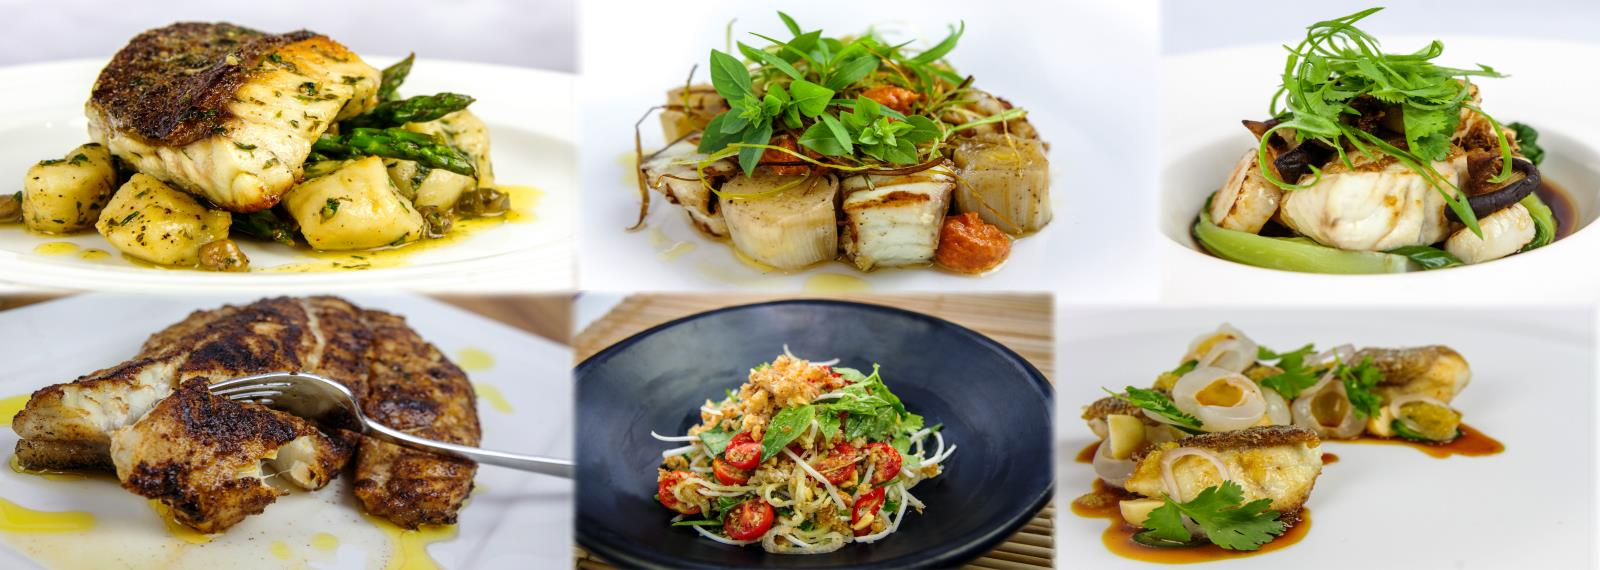 Slide-1-Grouped-plated-food-1600x570